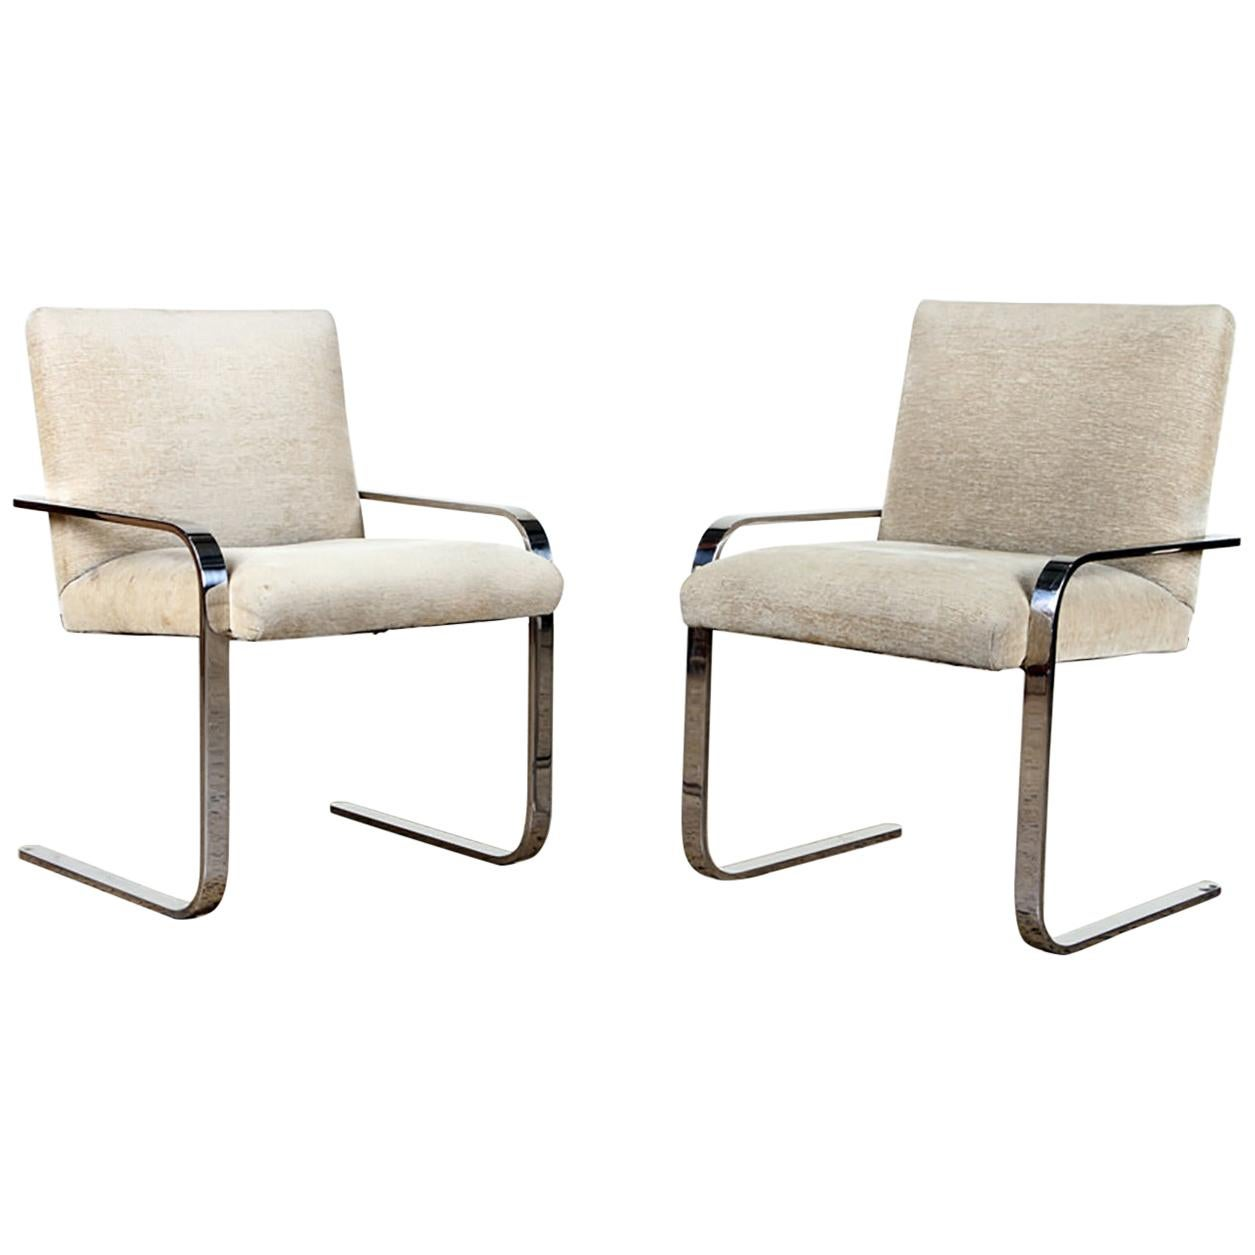 Set of Mid-Century Modern Chrome Dining Chairs